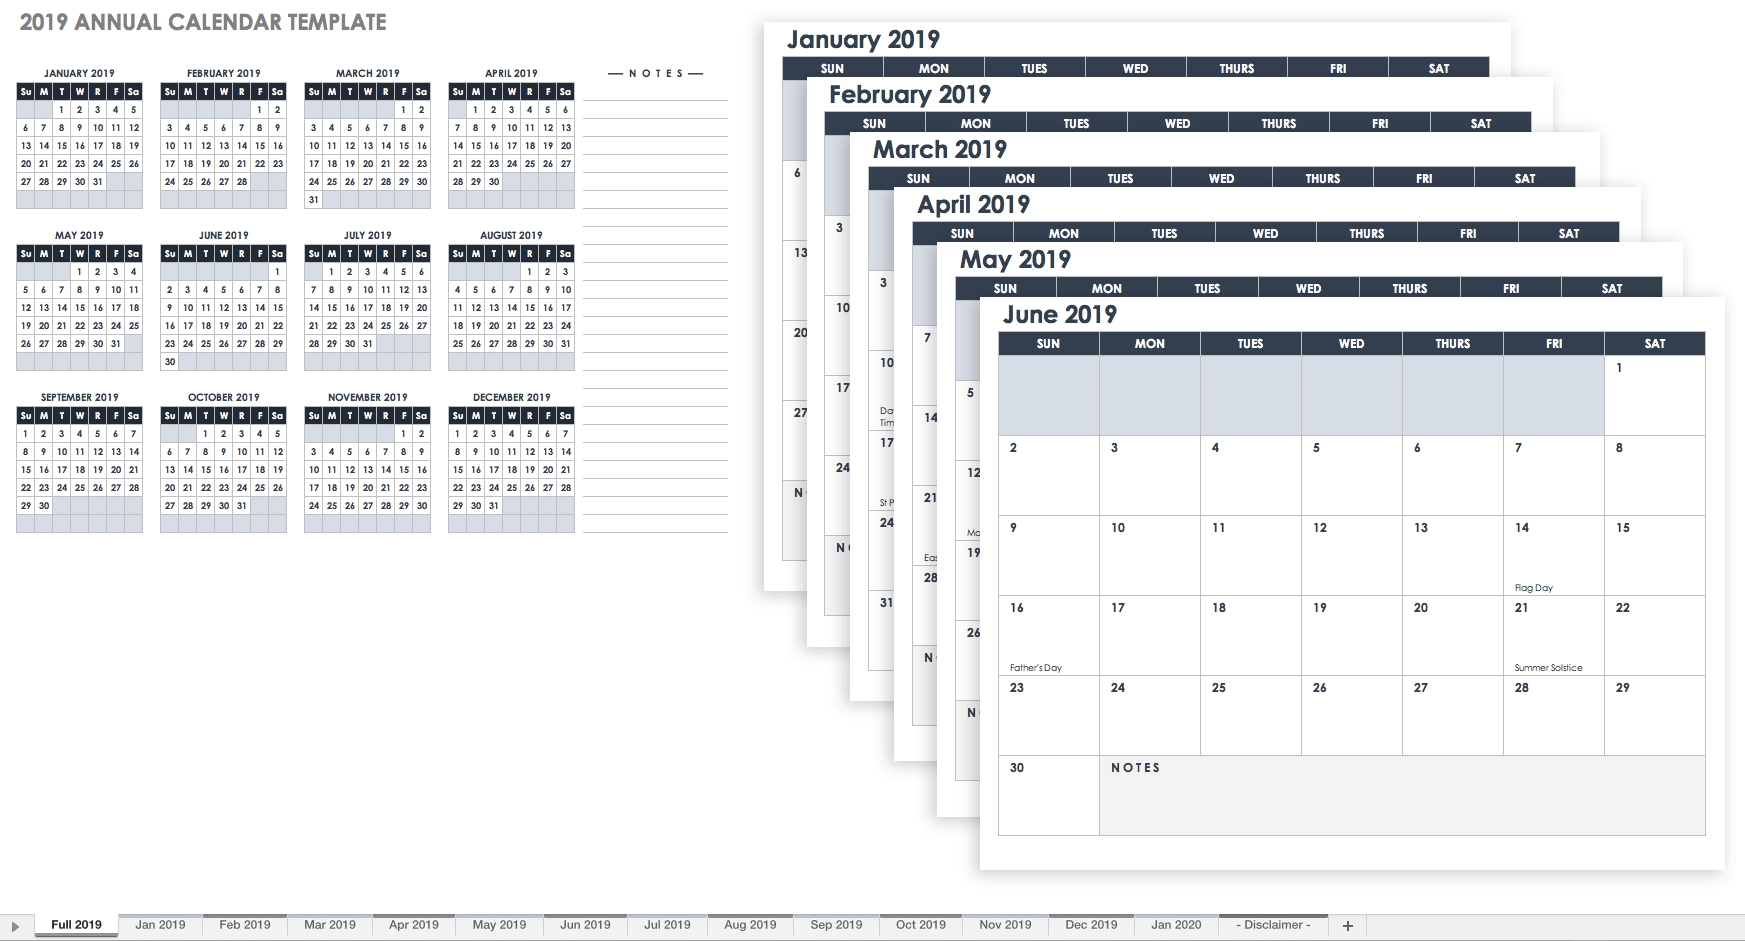 15 Free Monthly Calendar Templates | Smartsheet with regard to Monthly Calendars To Print Colorful